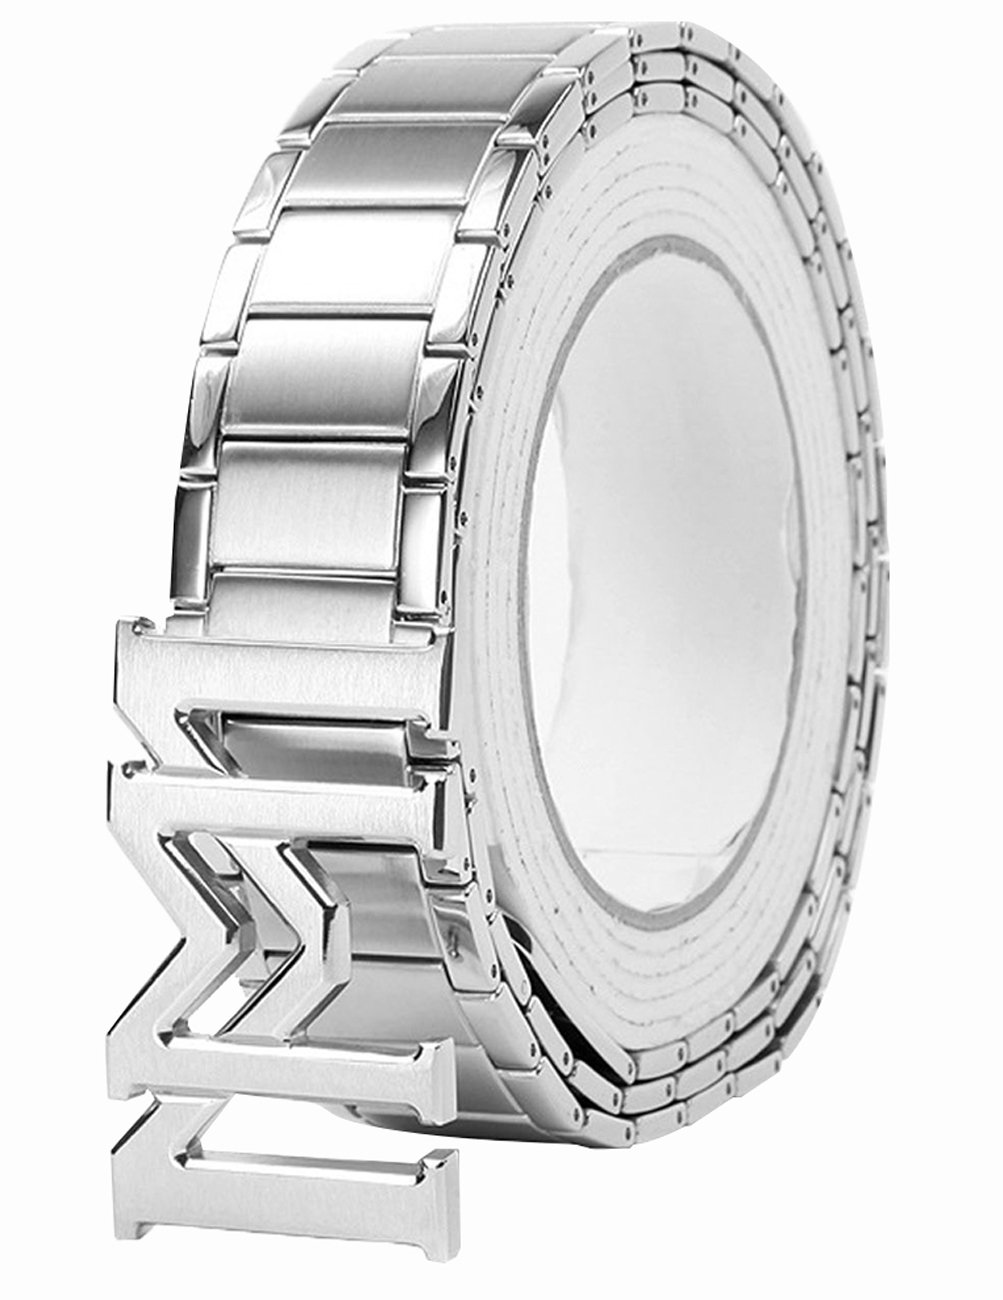 Menschwear Men's Stainless Steel Belt Slide Buckle Adjustable 32mm 124 Silver 130cm by Menschwear